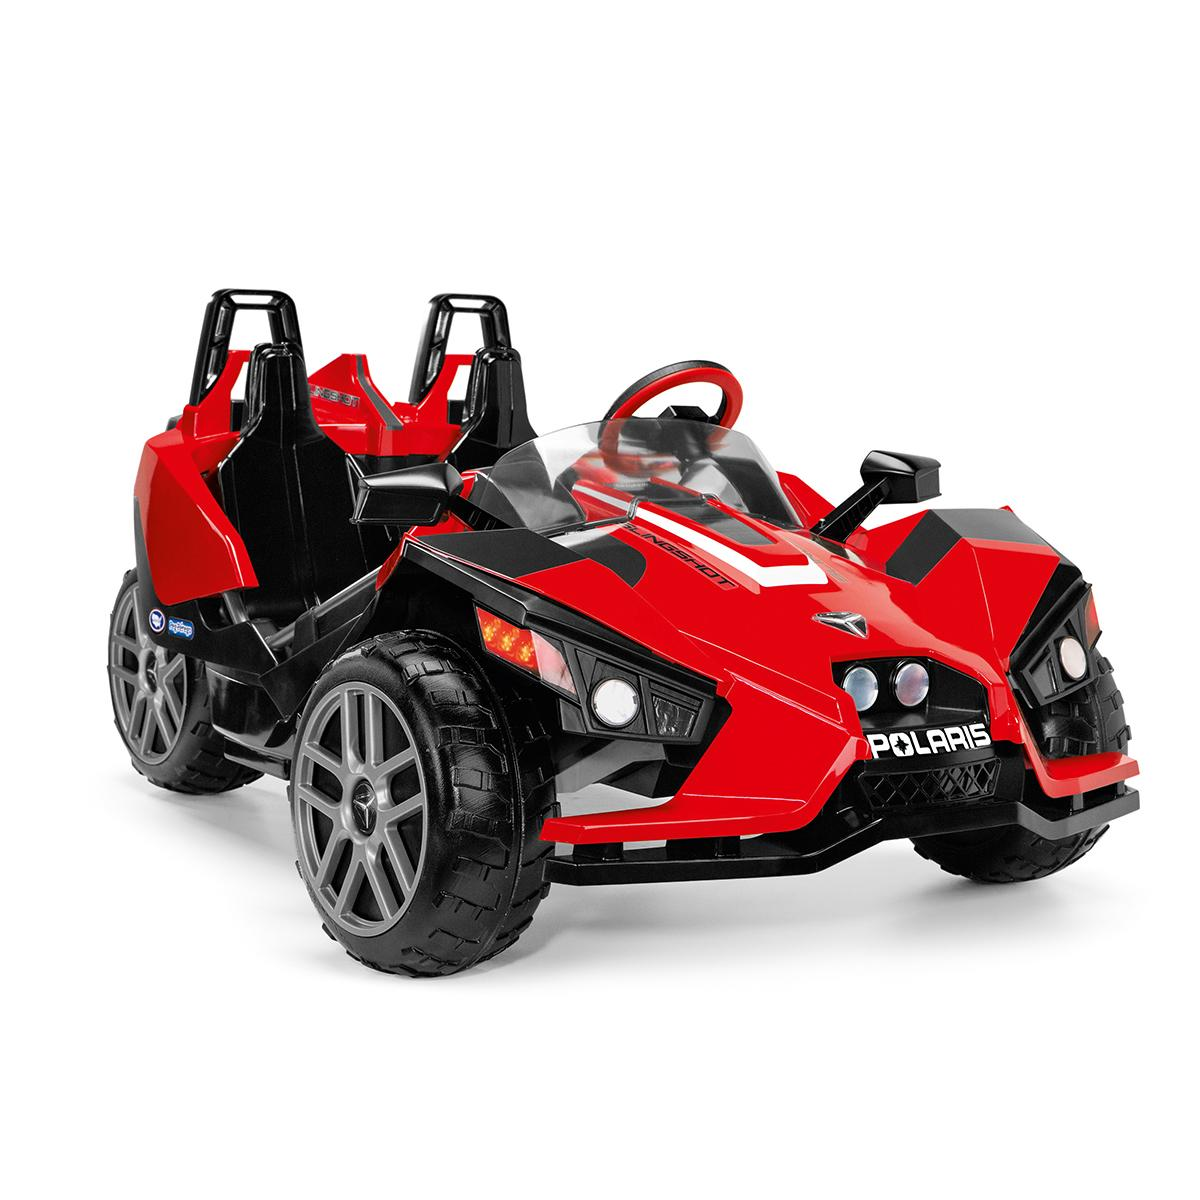 powered, electrical vehicle, ride-on, toy, kids, play, polaris